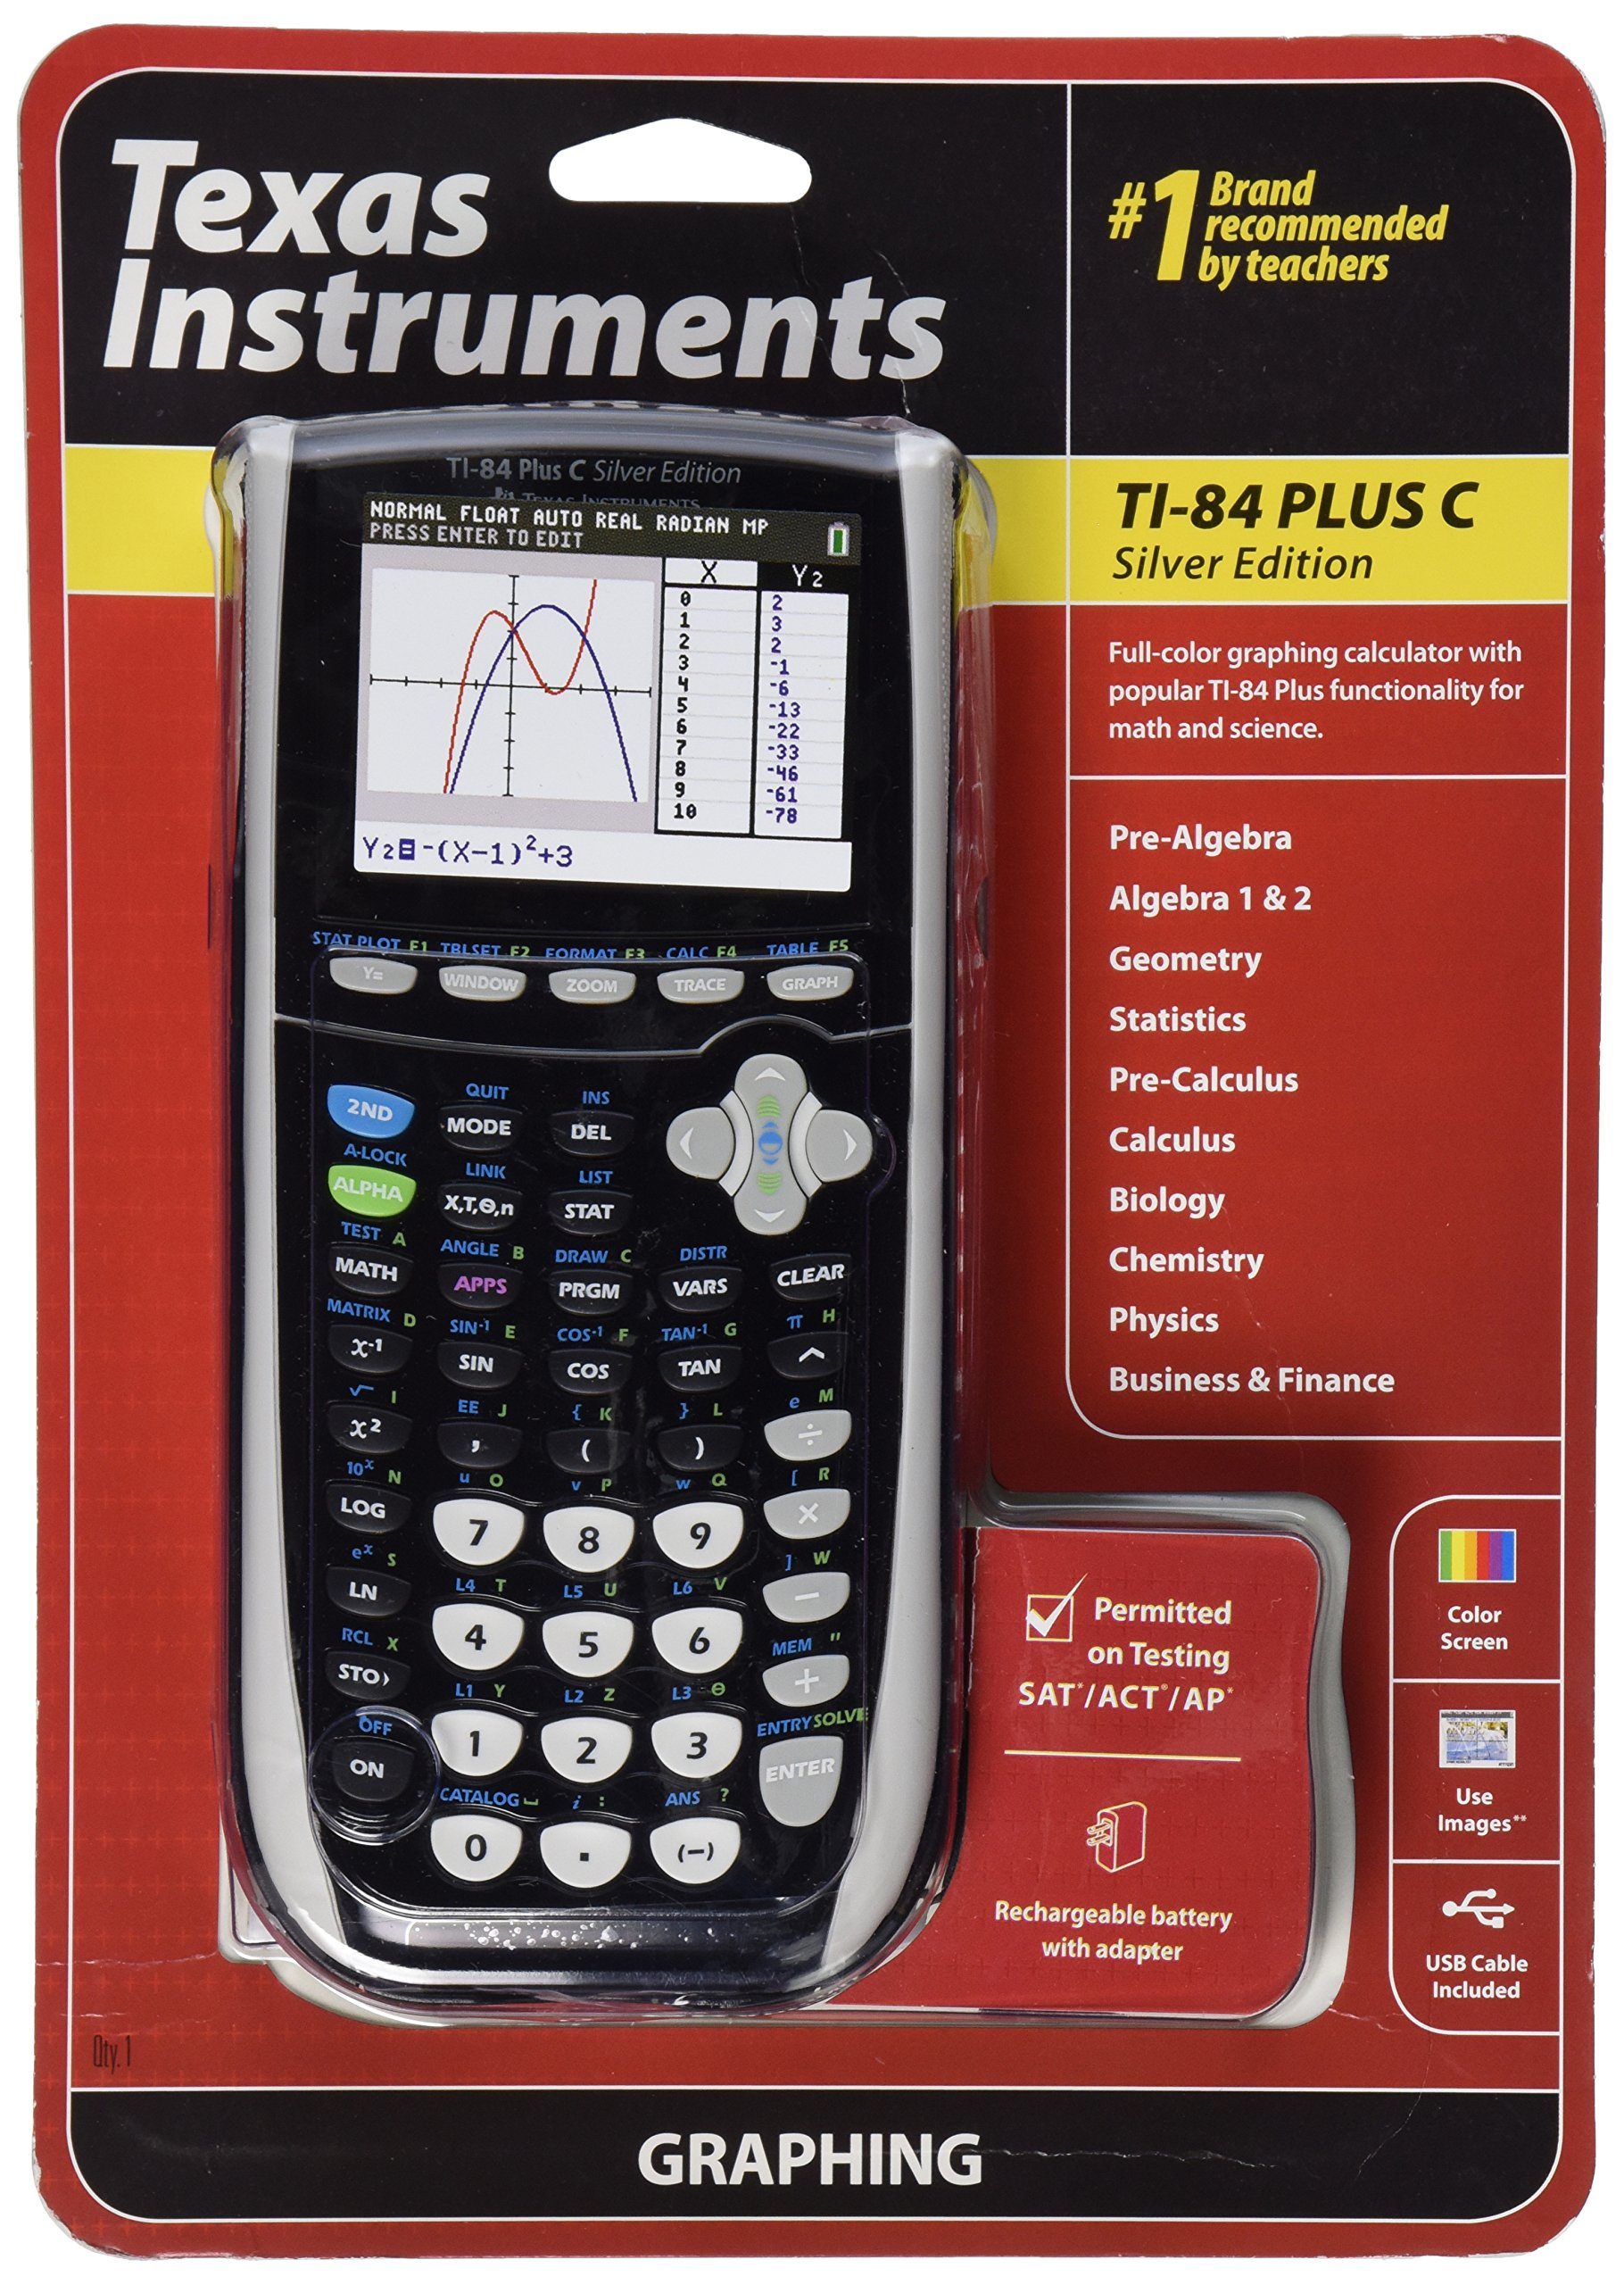 Texas Instruments TI-84 Plus C Silver Edition Graphing Calculator, Black by Texas Instruments